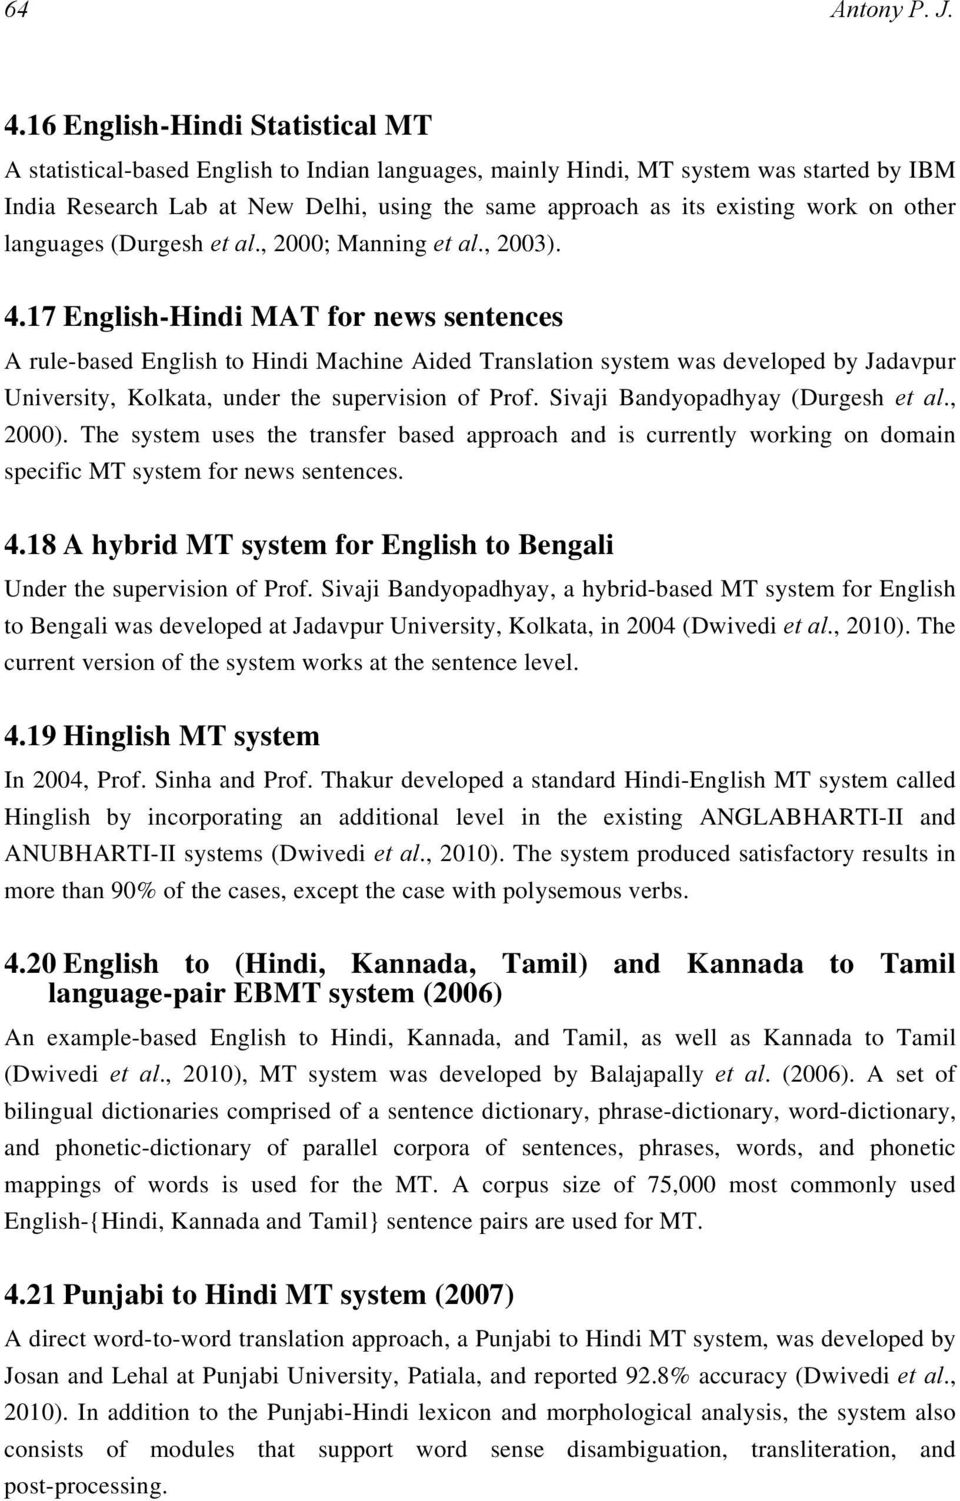 Machine Translation Approaches and Survey for Indian